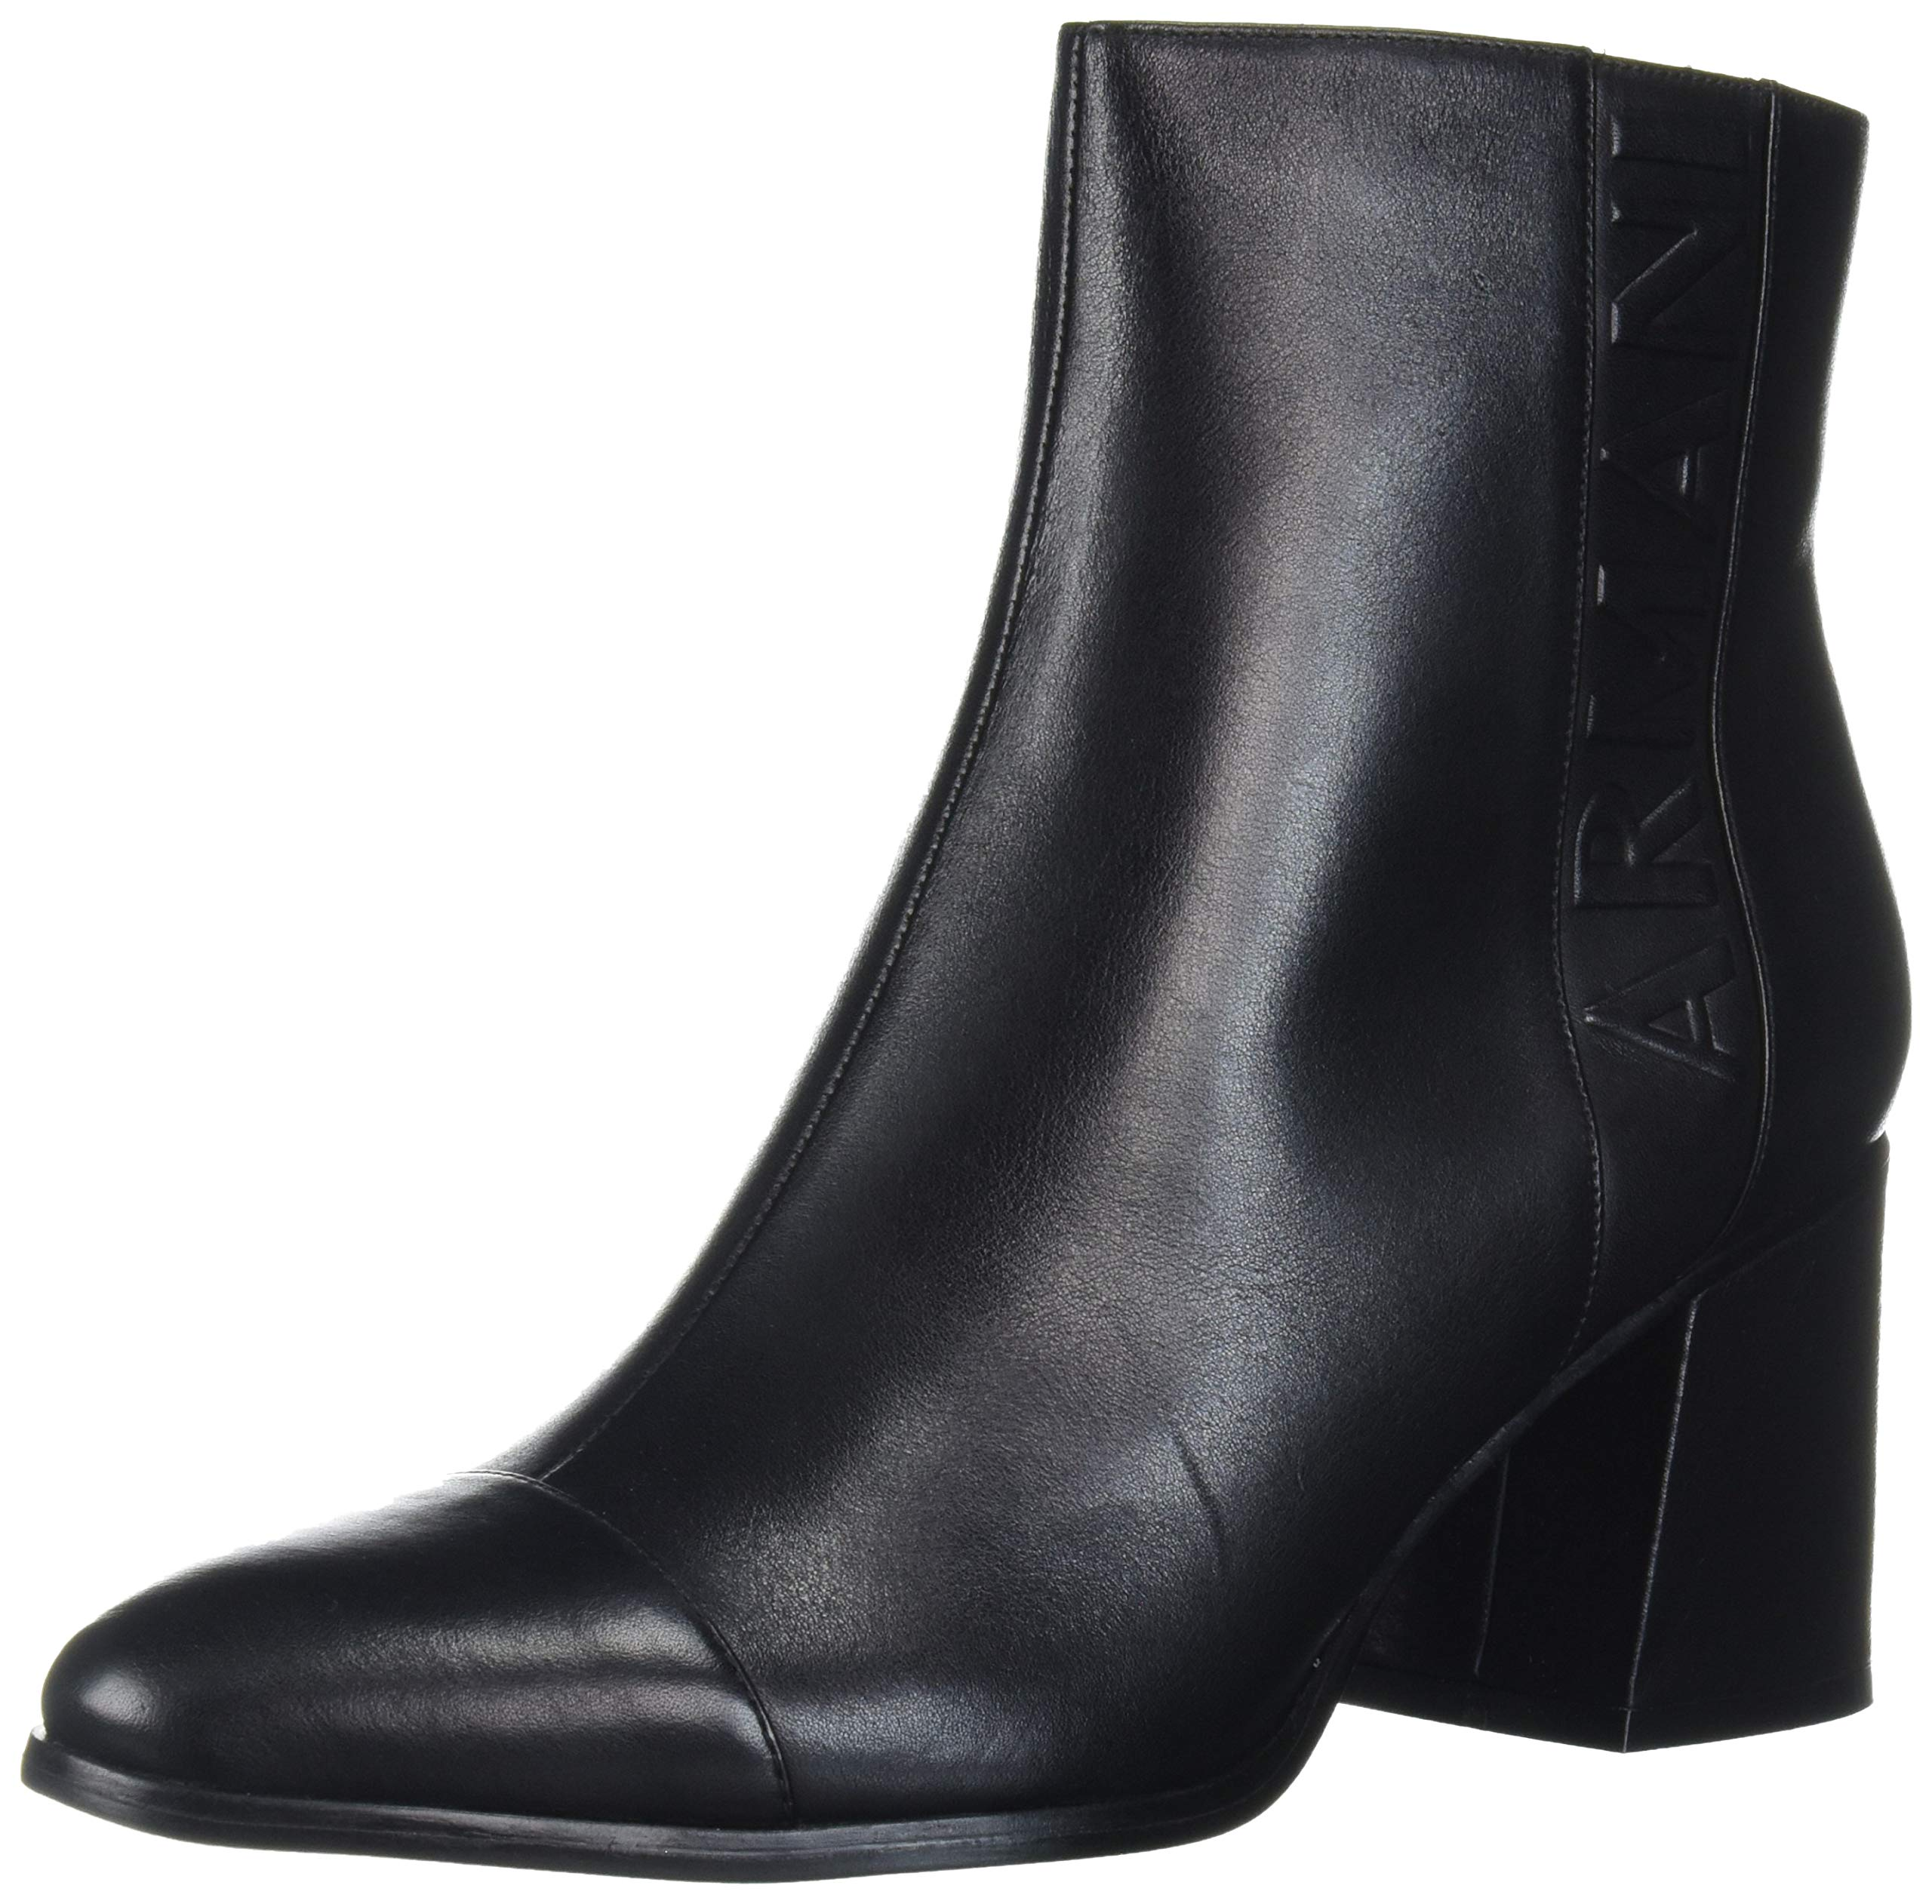 A|X Armani Exchange Women's Ankle Boot with Chunky Heel, Black, 38M Medium EU (7 US) by A|X Armani Exchange